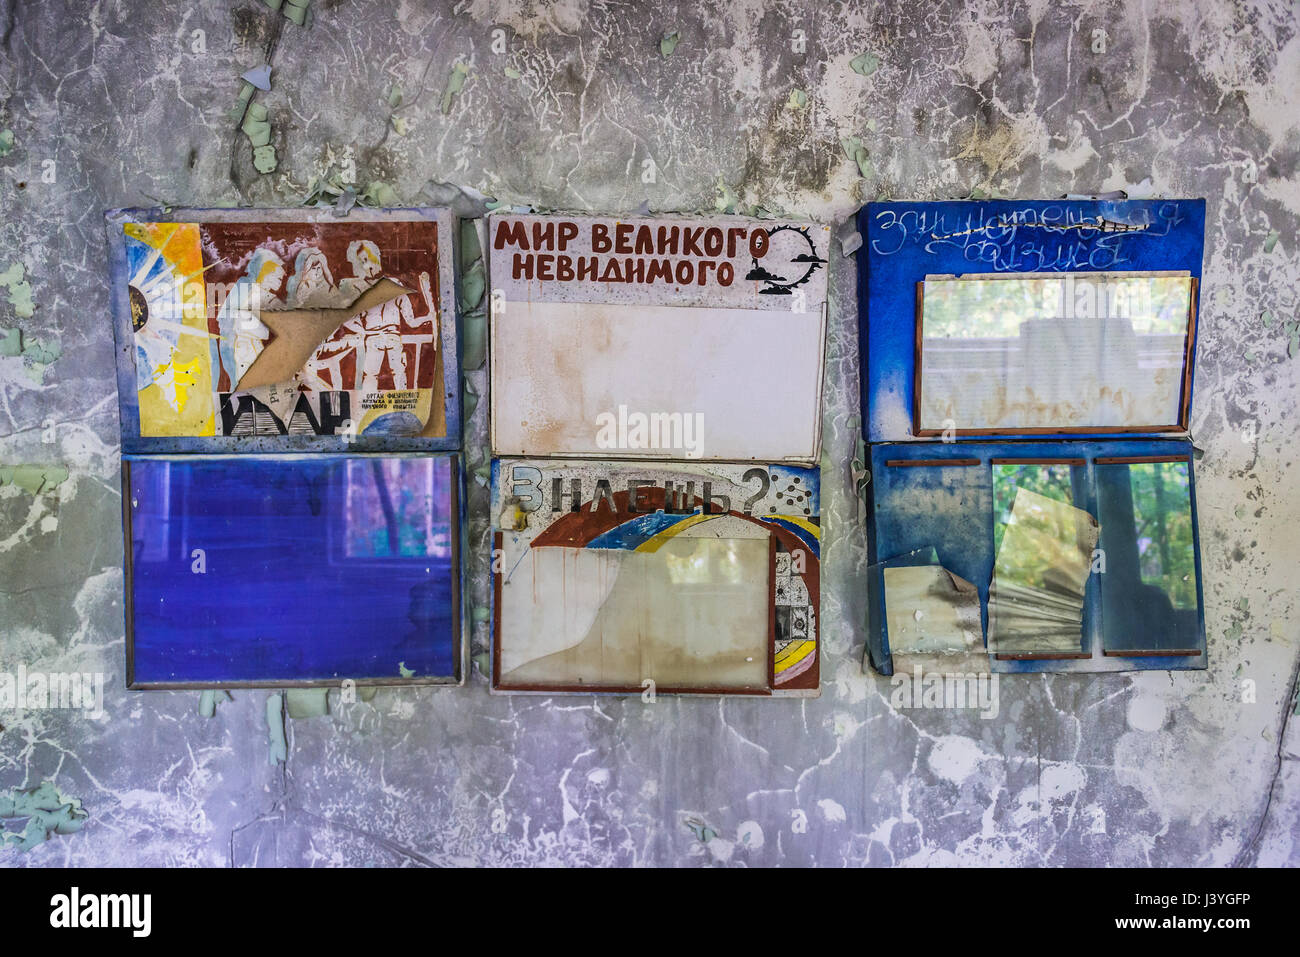 Posters in High school No 3 in Pripyat ghost city of Chernobyl Nuclear Power Plant Zone of Alienation around nuclear - Stock Image